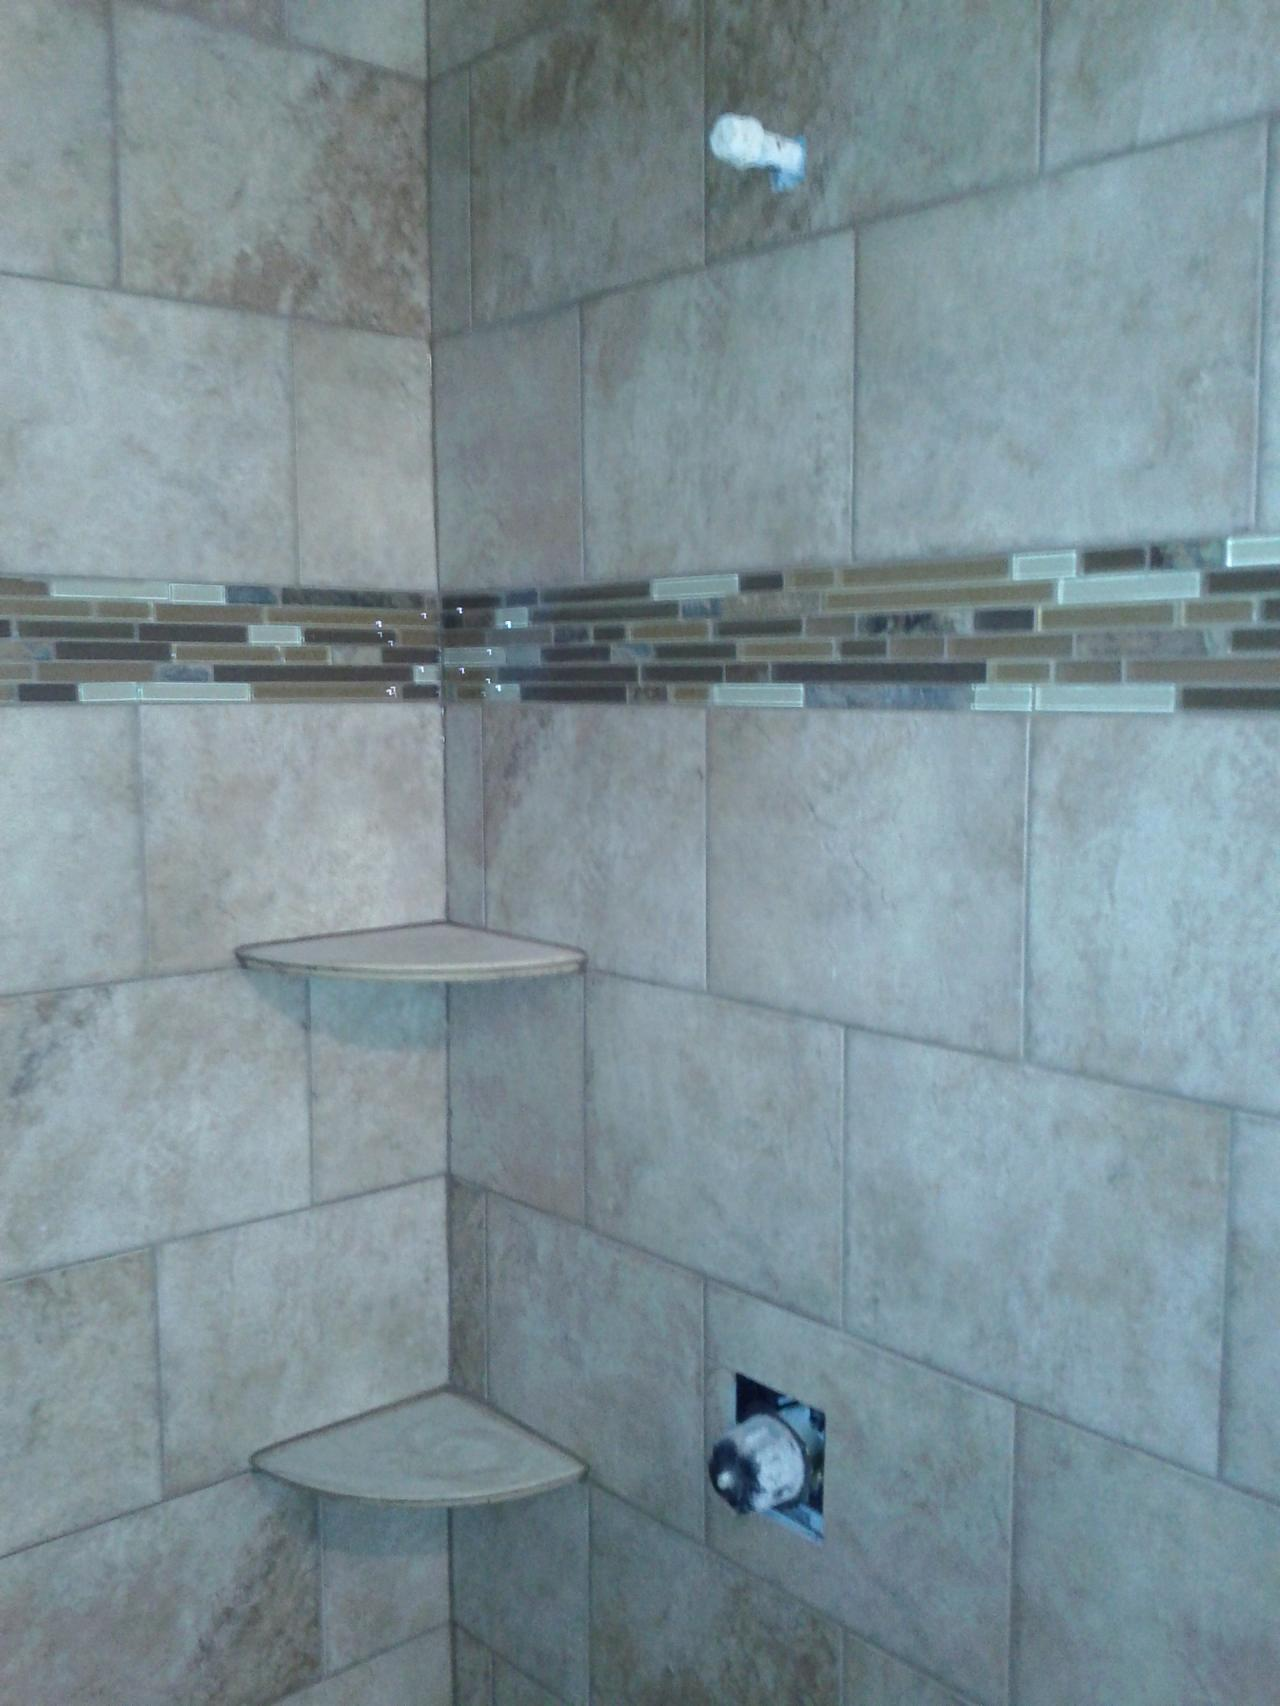 brick_pattern_tile_shower_with_shelves_in_bathroom53103937_large